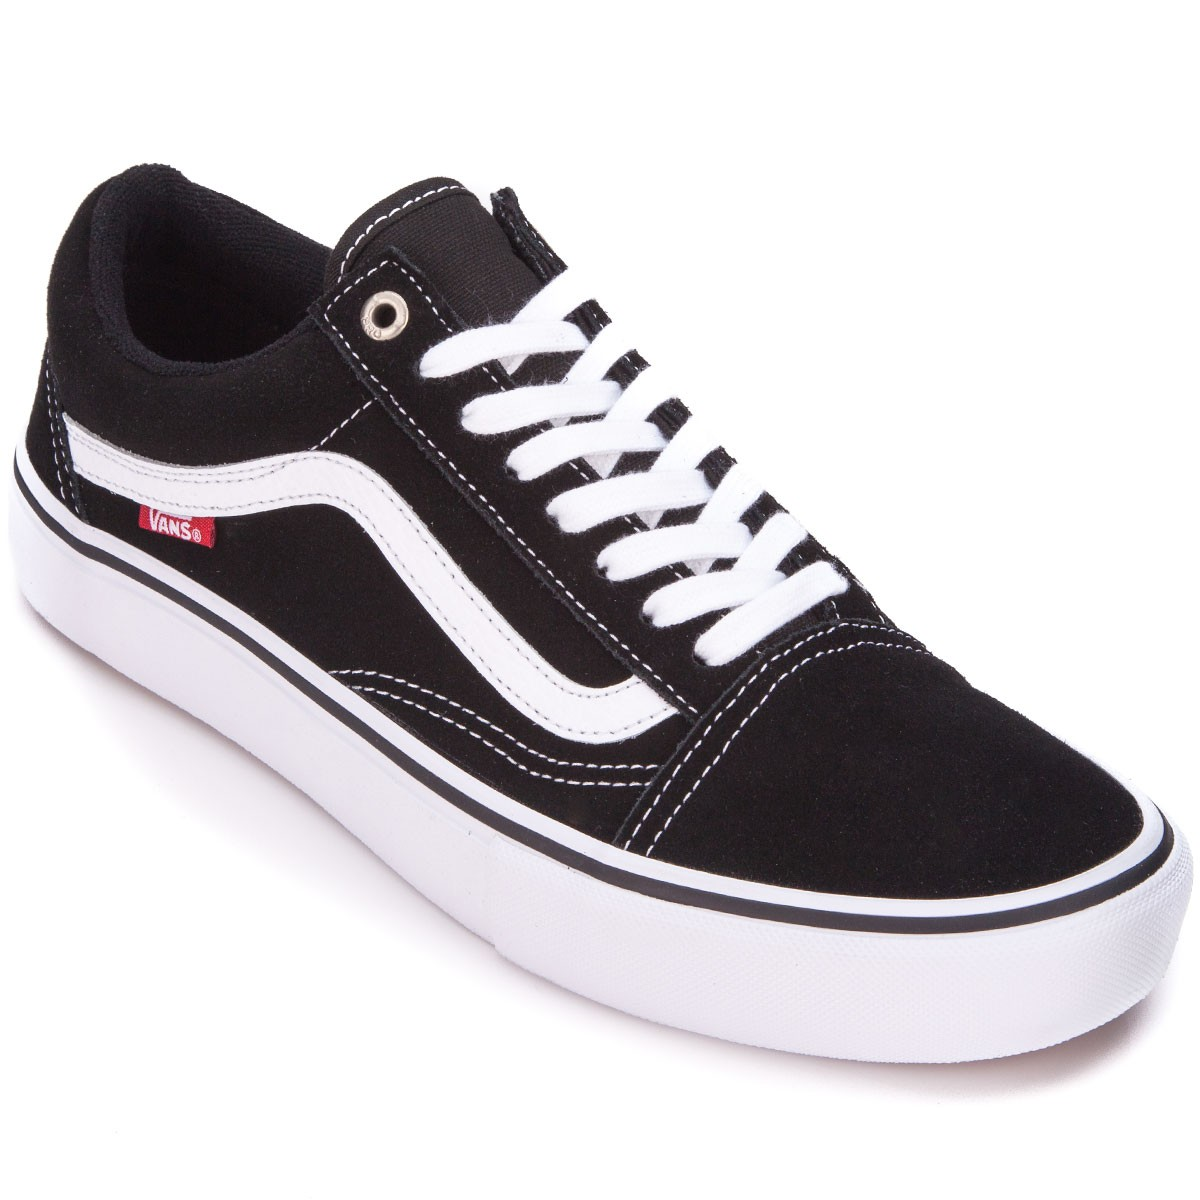 vans old skool pro shoes. Black Bedroom Furniture Sets. Home Design Ideas